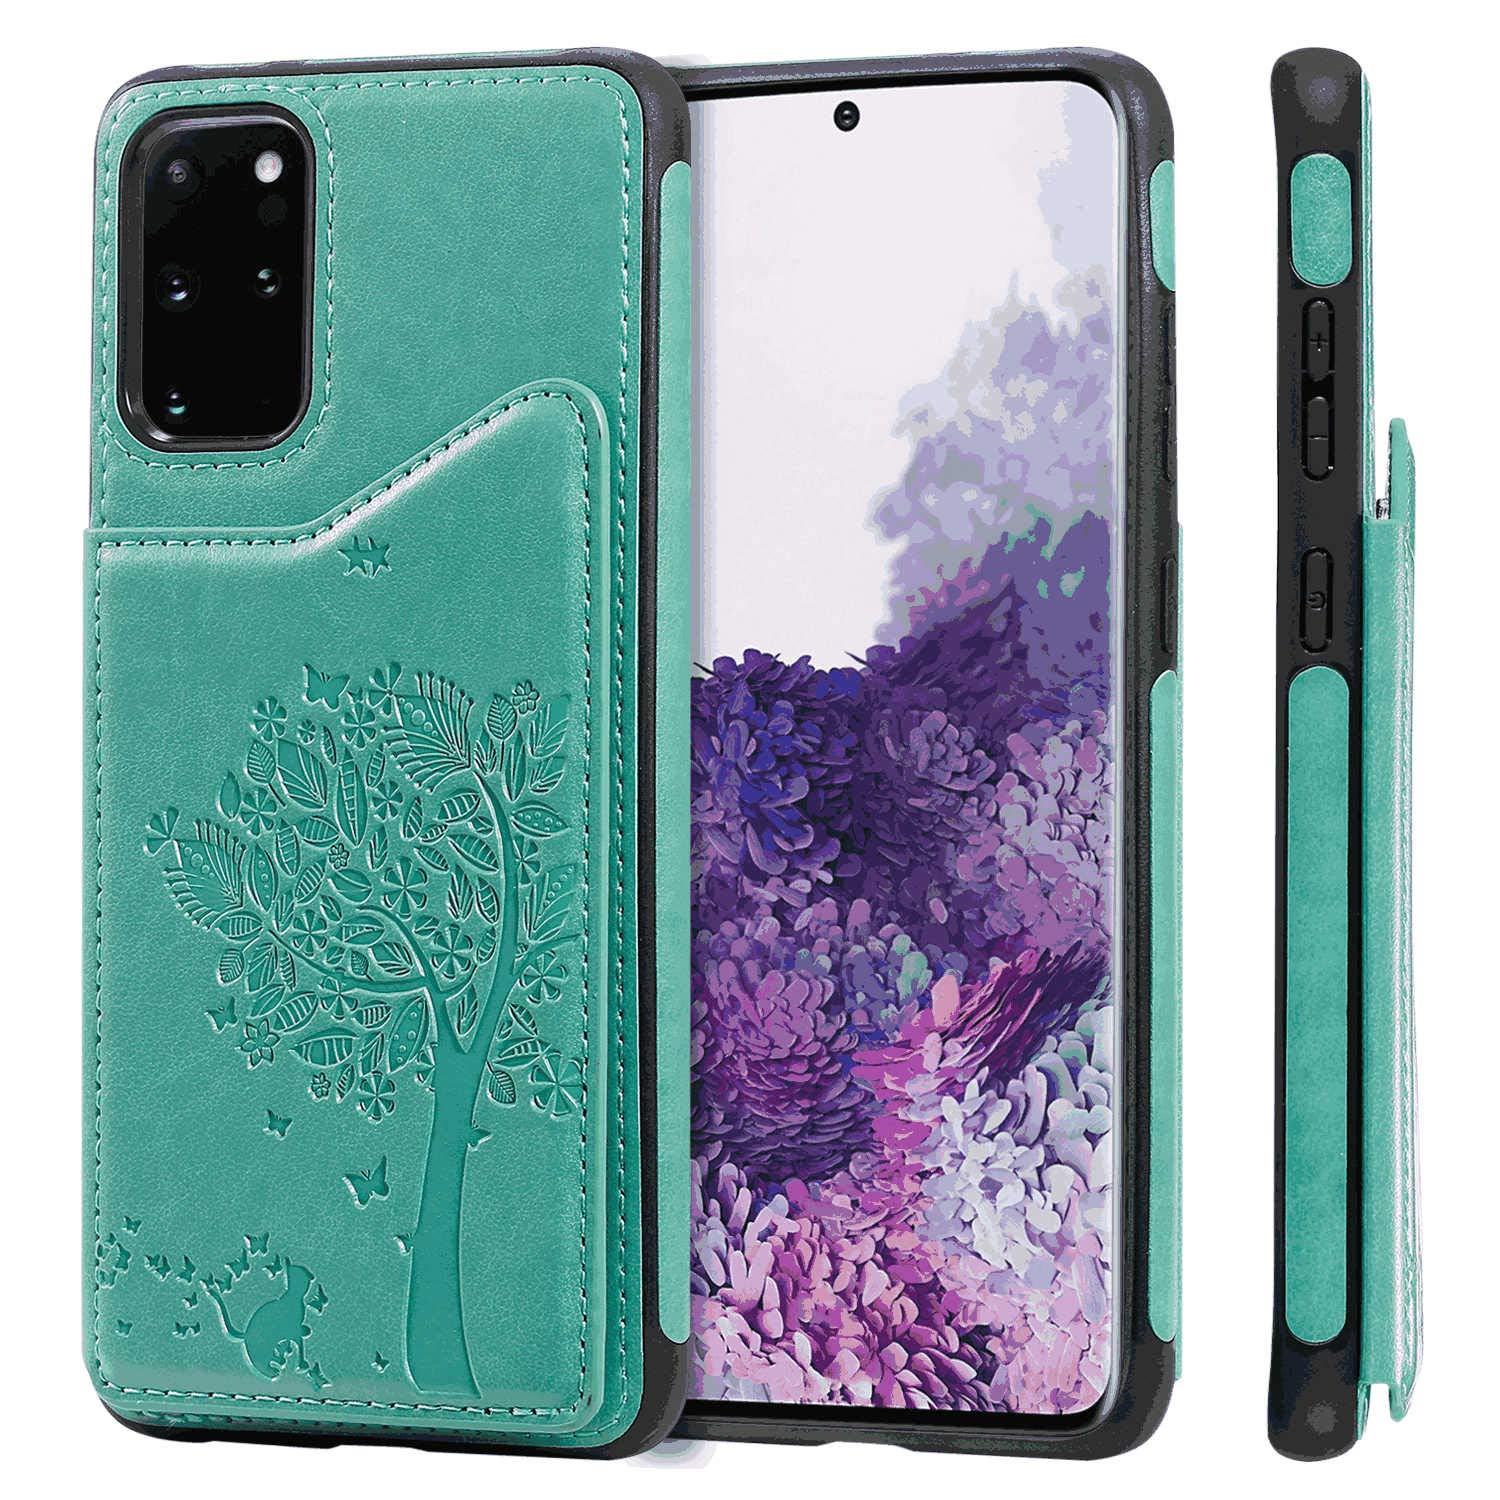 Black PU Leather Wallet Flip Case for iPhone 11 Pro Positive Cover Compatible with iPhone 11 Pro